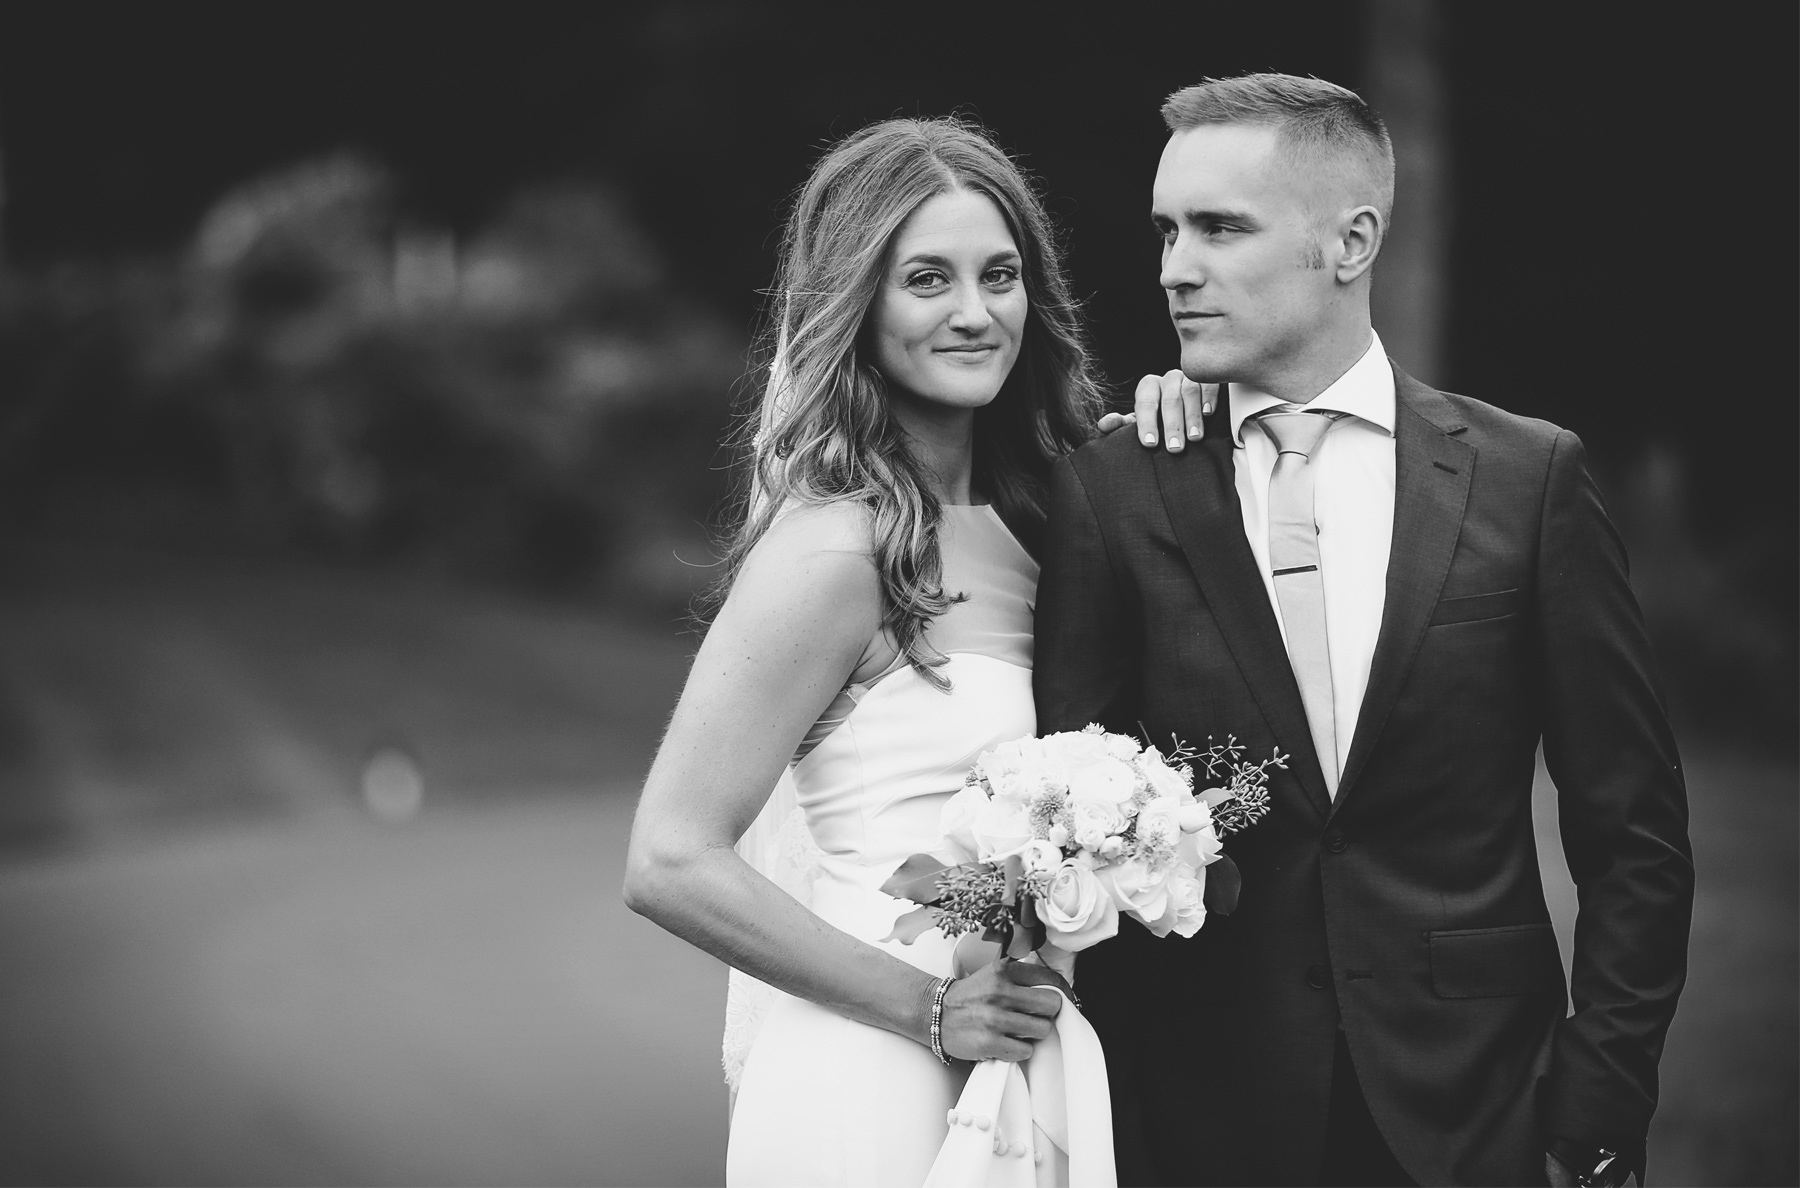 08-Dellwood-Minnesota-Wedding-Photographer-by-Andrew-Vick-Photography-Summer-Country-Club-First-Meeting-Look-Bride-Groom-Black-and-White-Sarah-and-Landon.jpg